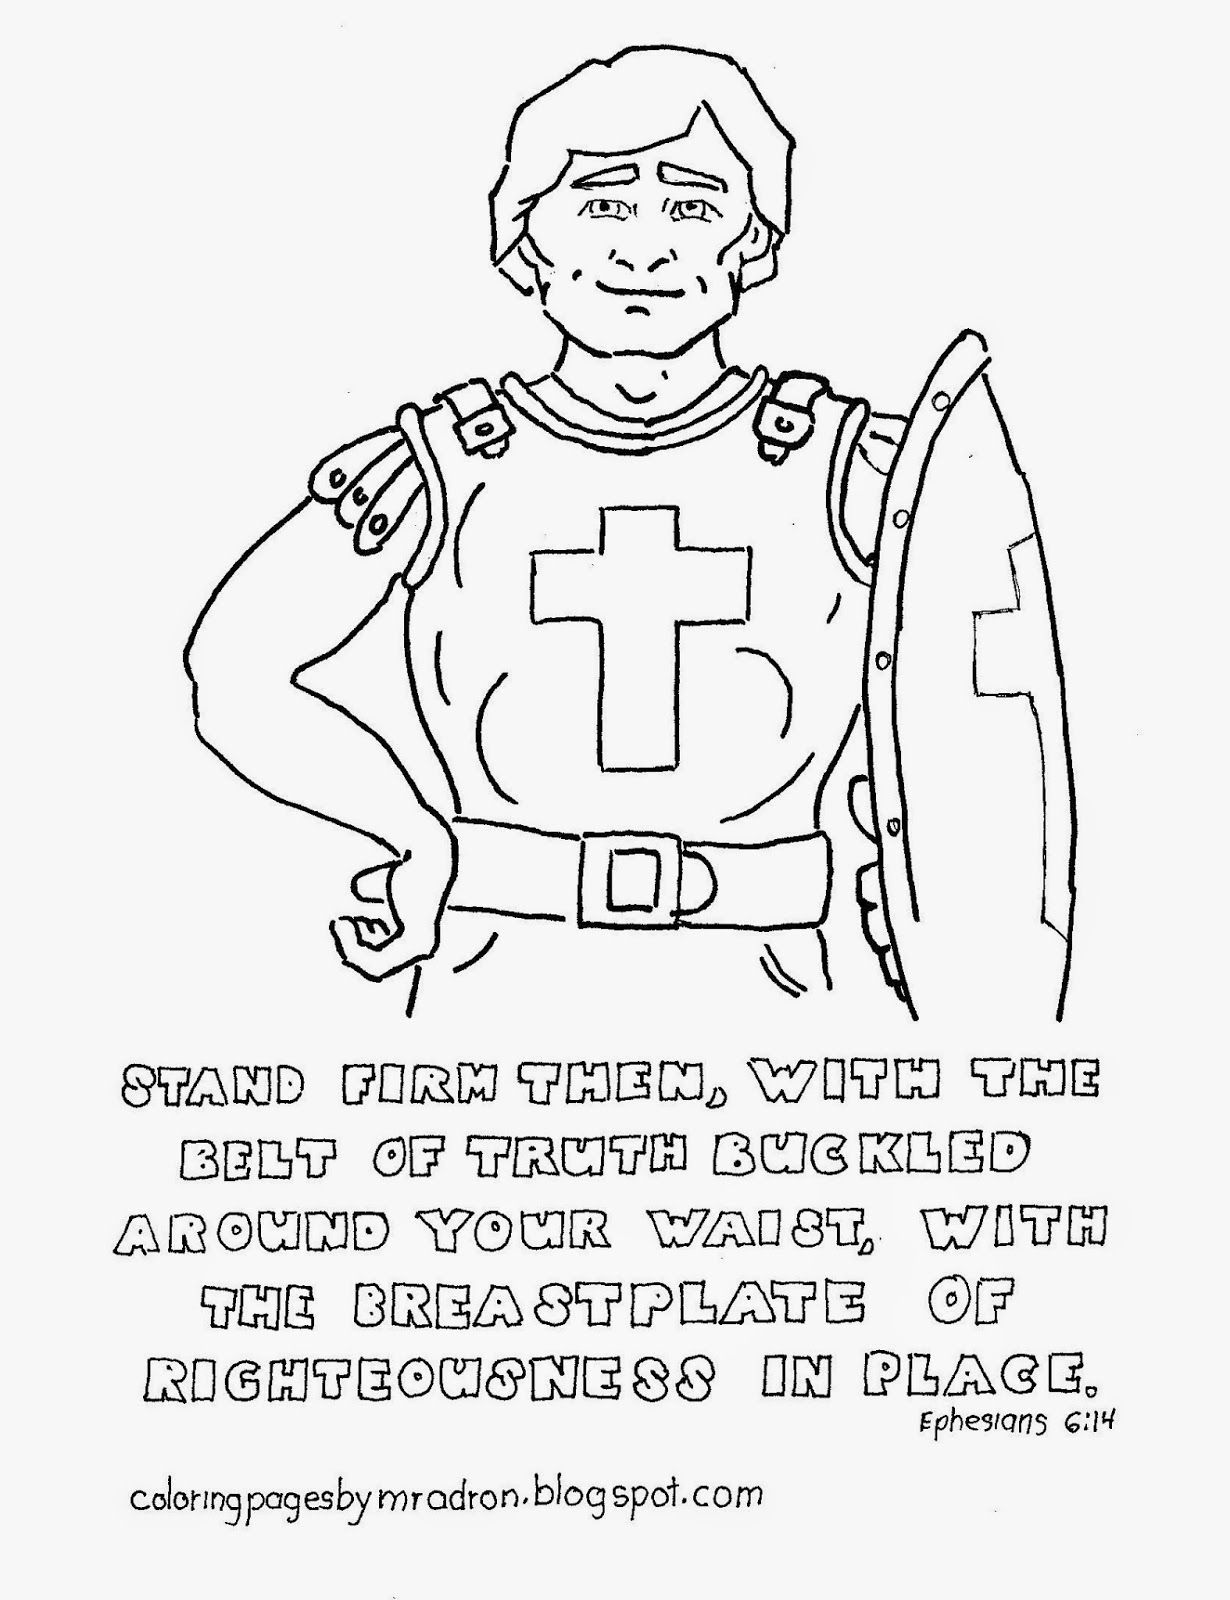 Free coloring pages for toddlers from the bible - Coloring Pages For Kids By Mr Adron Breastplate Of Righteousness Free Coloring Page